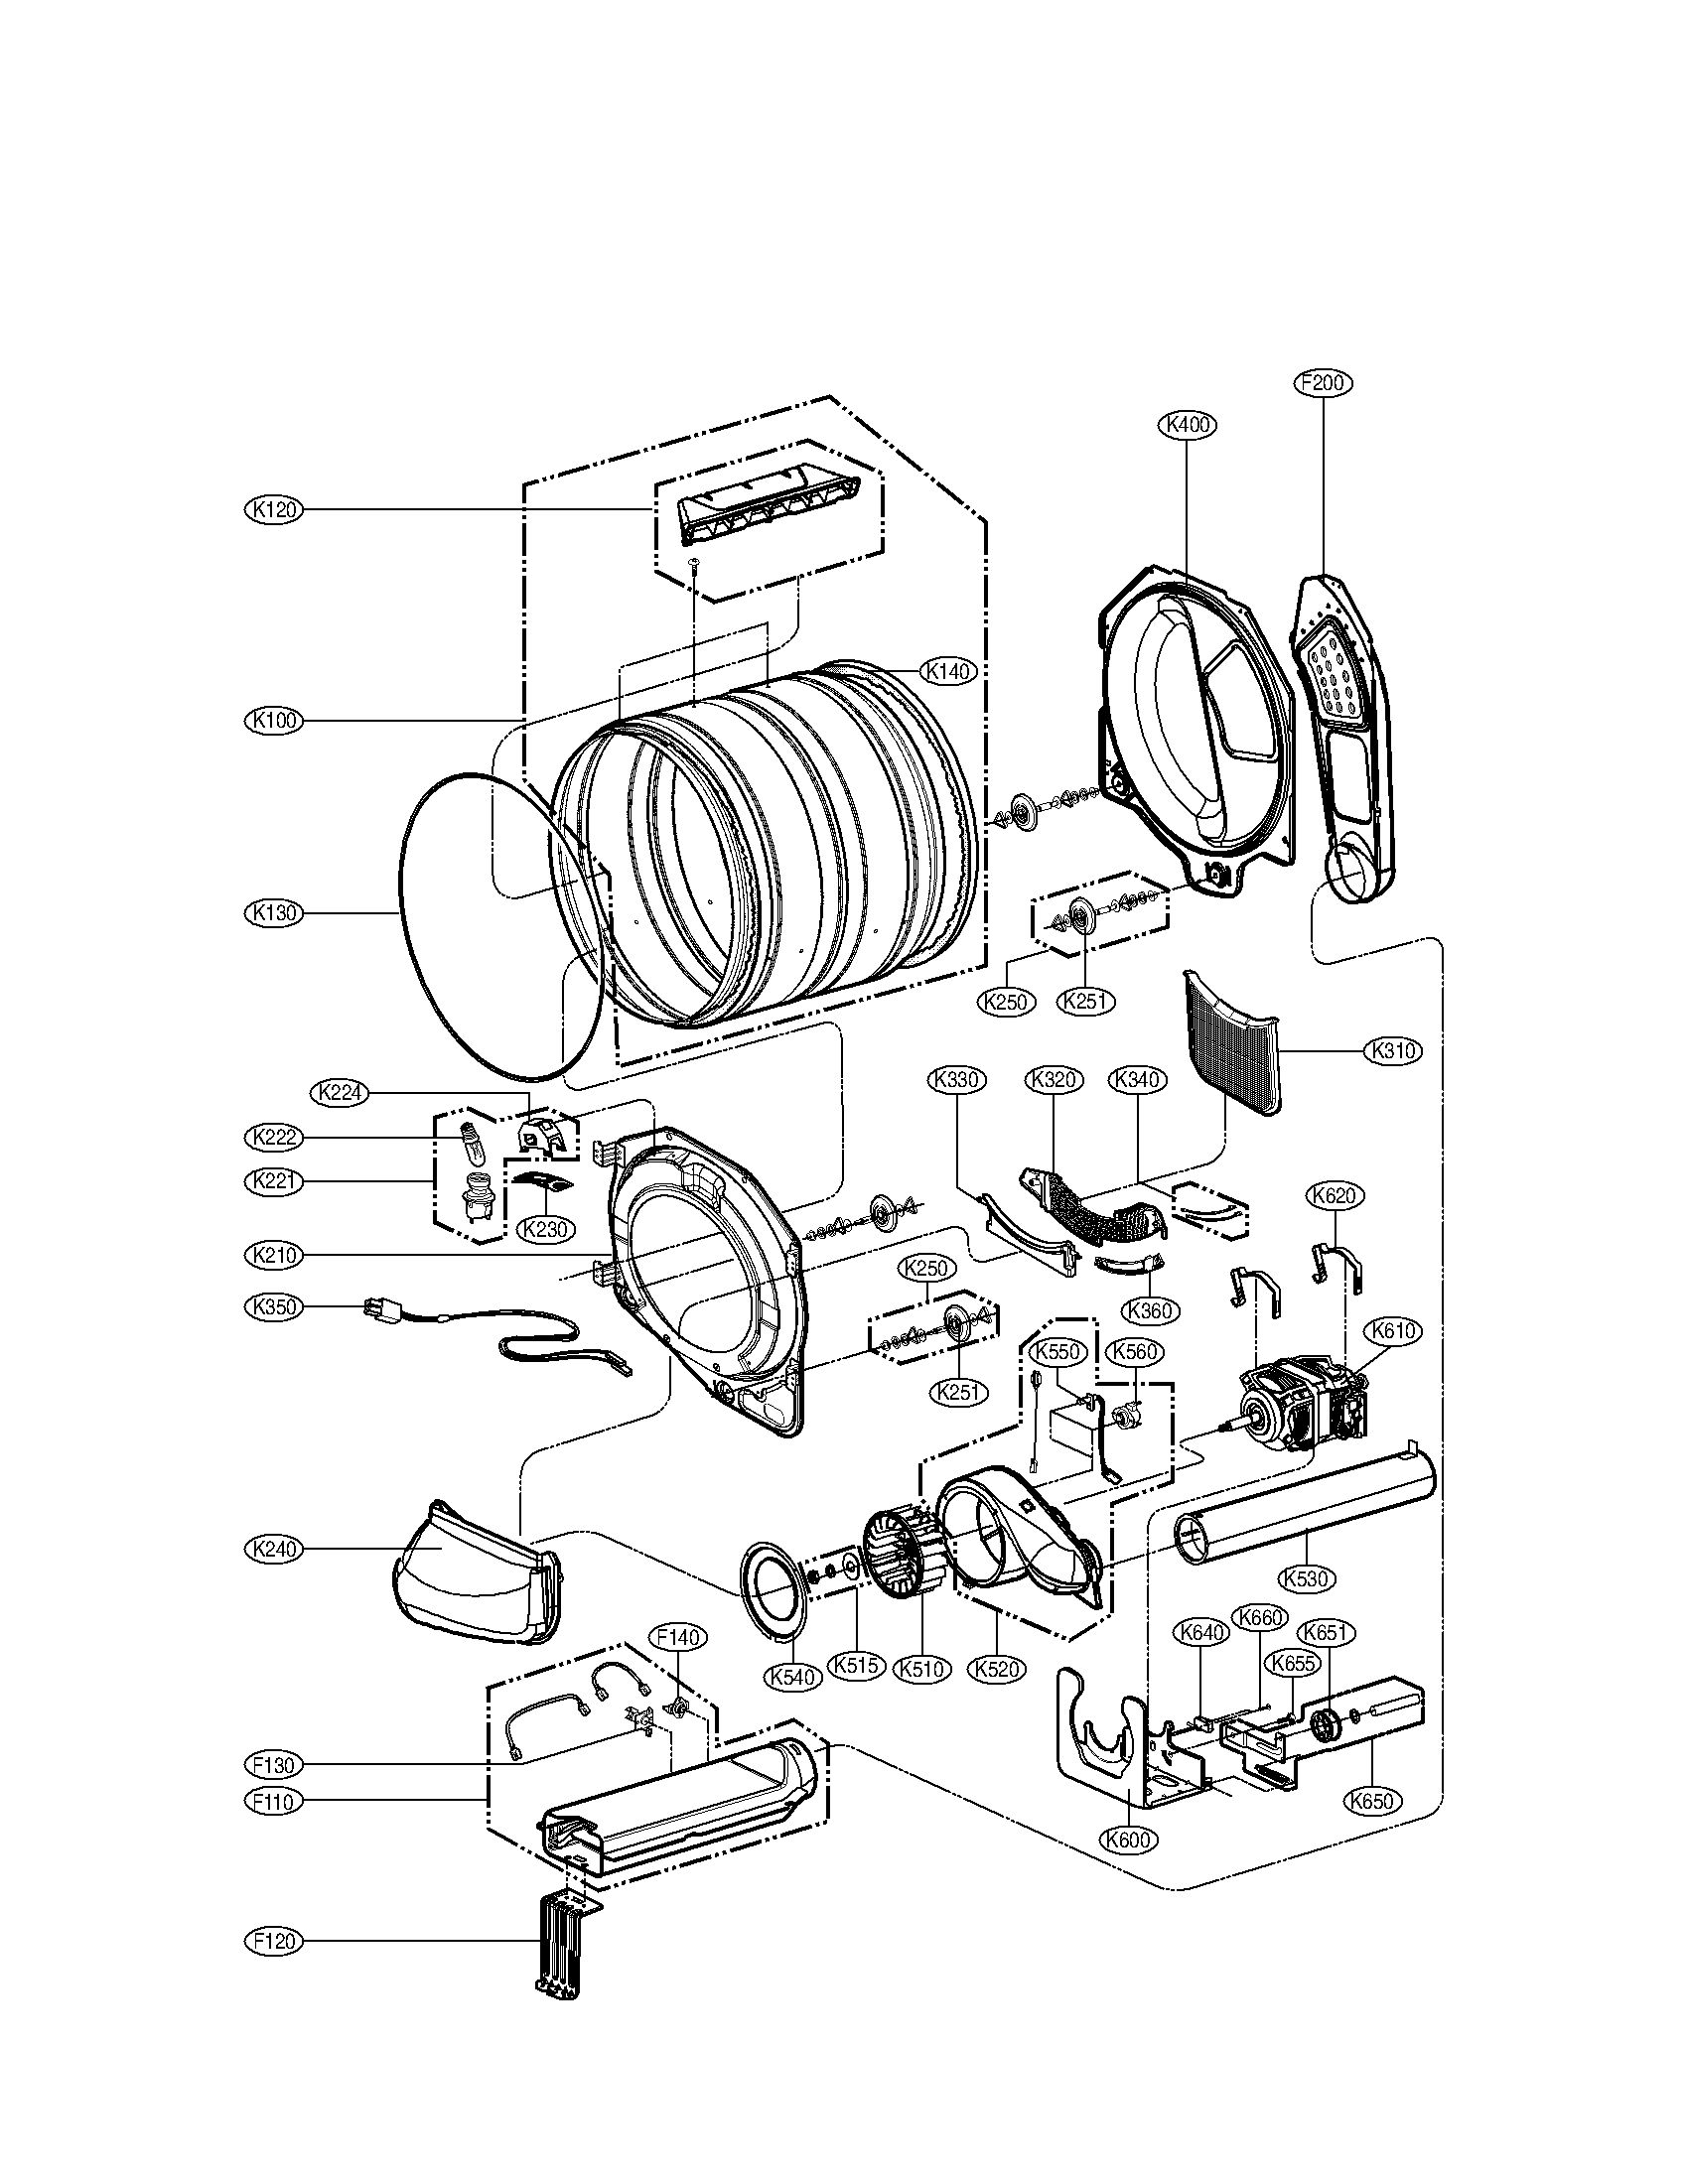 Drum And Motor Parts Assembly Diagram Amp Parts List For